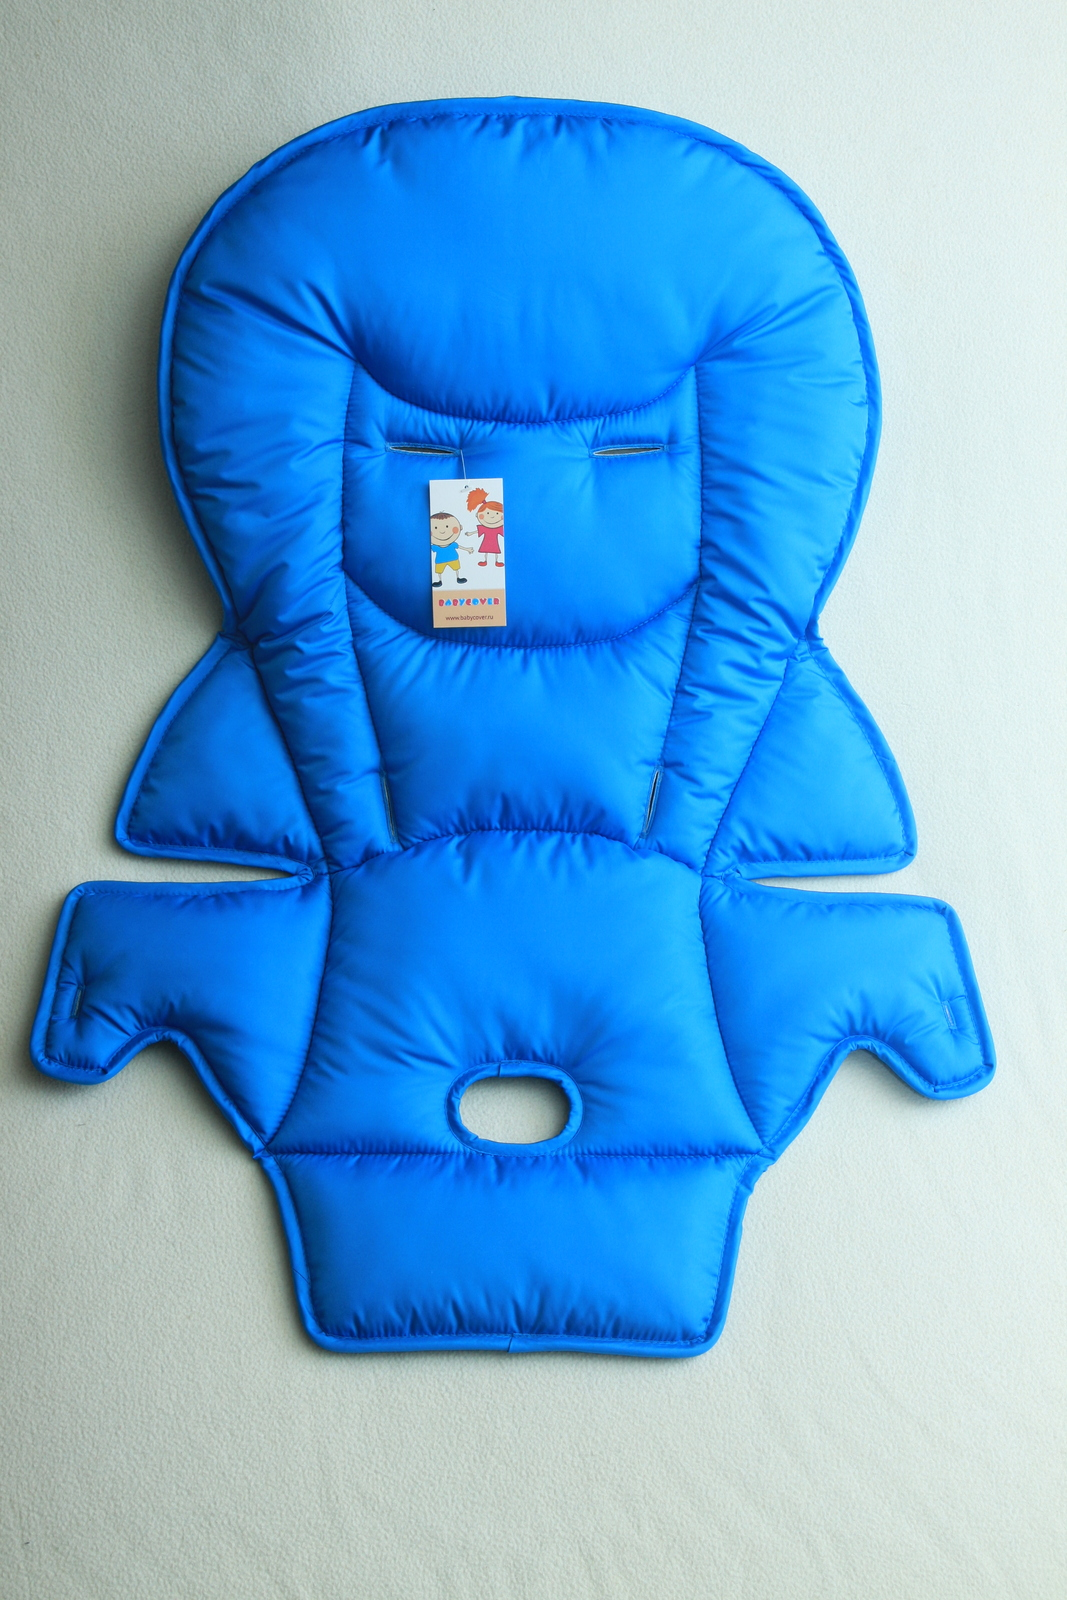 The seat pad cover for high chair Cam Istante and Neonato Lofty Relax. - $60.00